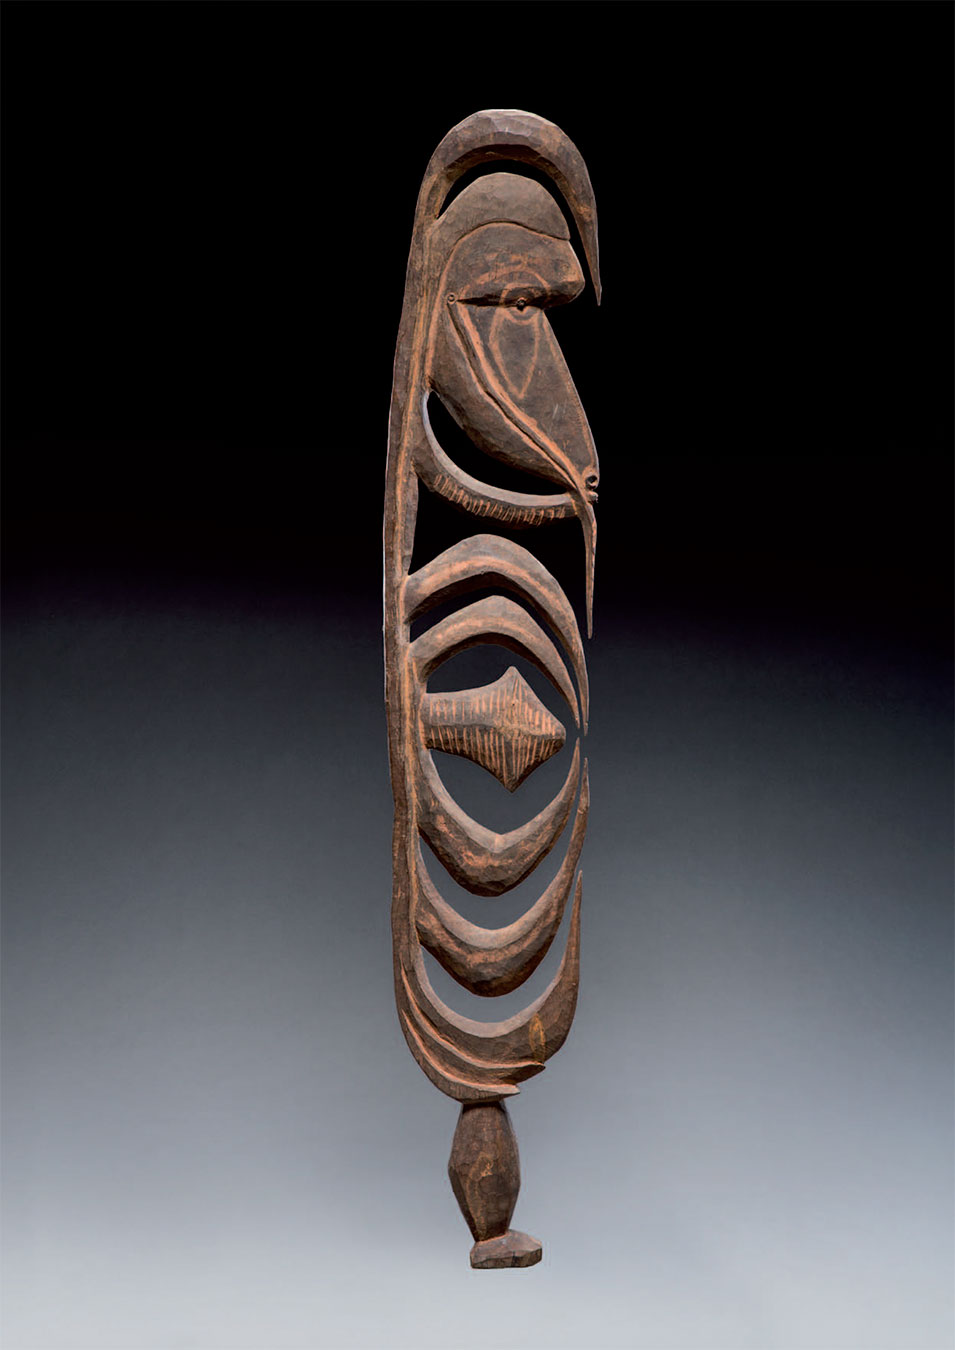 Oceanic Art San Francisco 2016 New Guinea & Polynesian Art